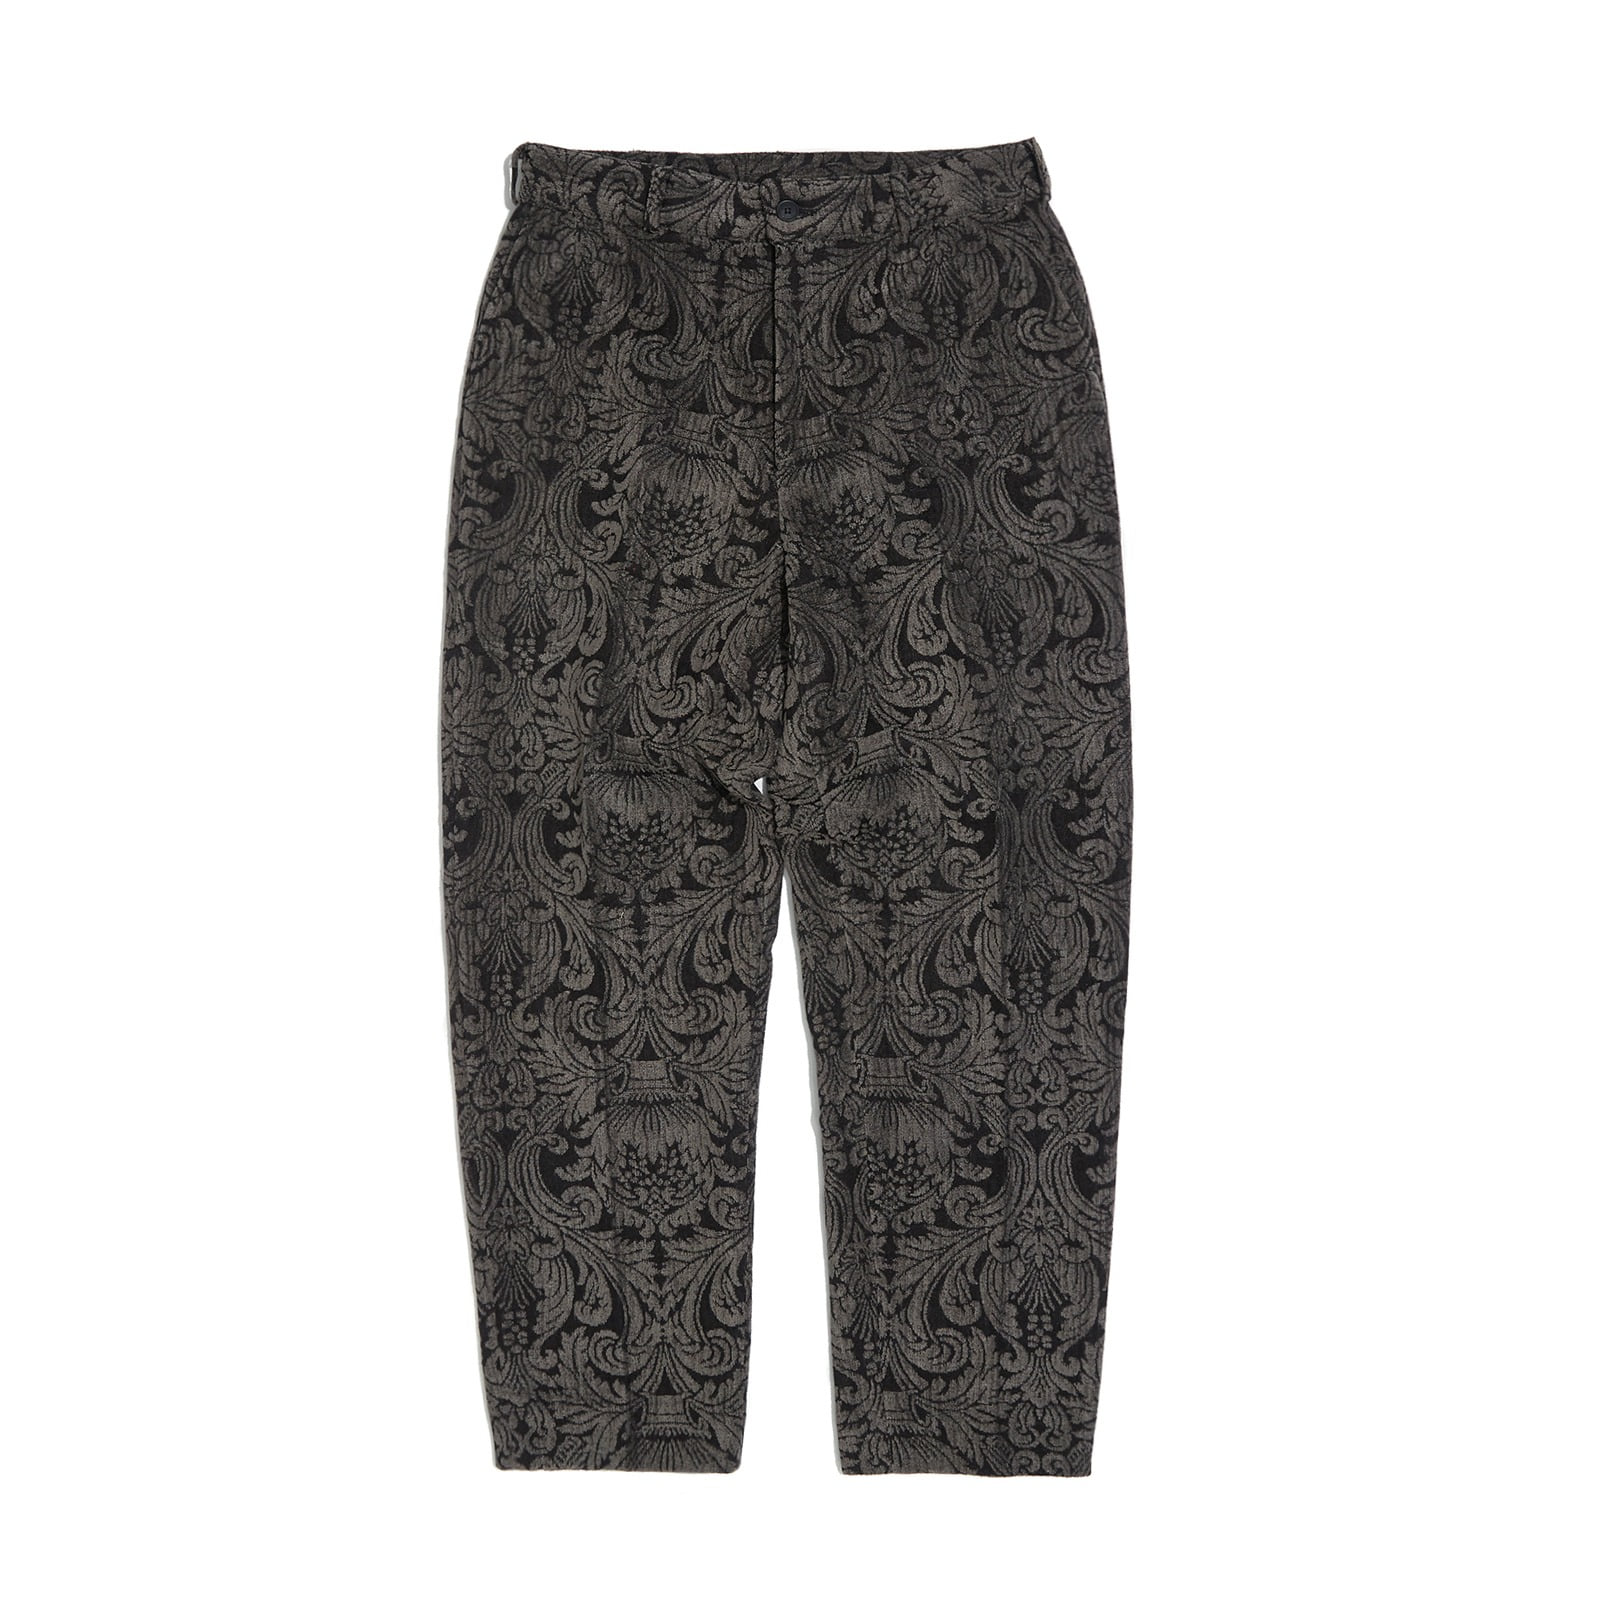 FLORAL JACQUARD PANTS (BLACK)